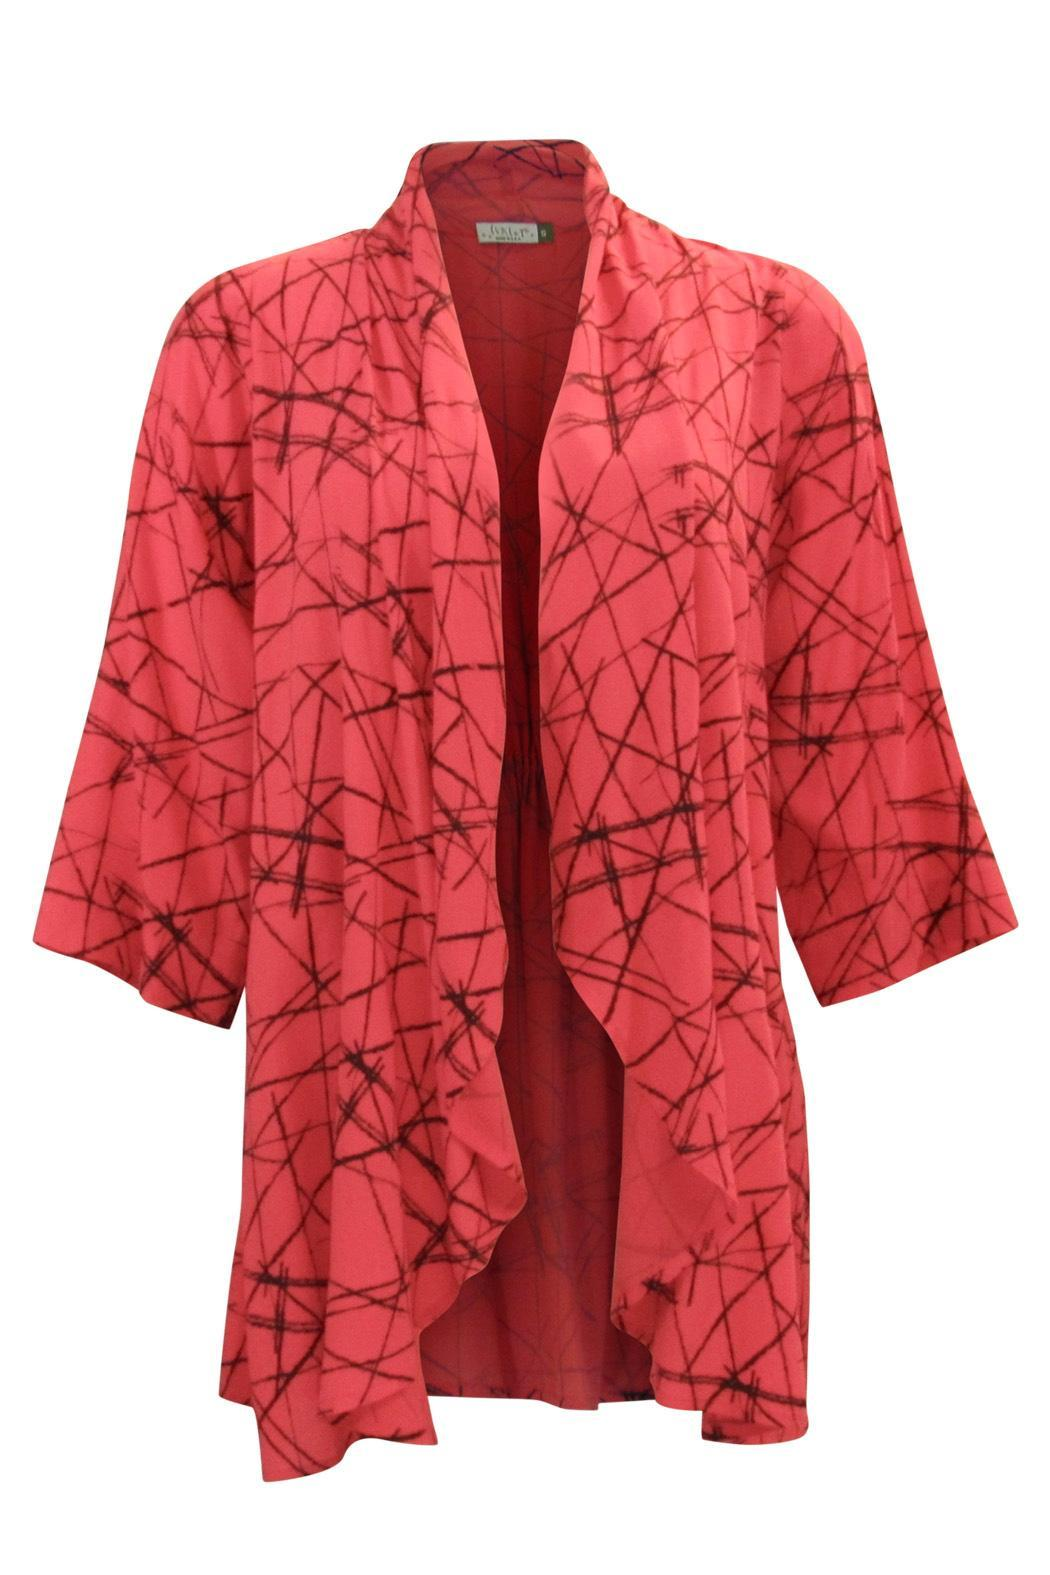 Chalet et ceci Rayon Coral Cardigan - Main Image